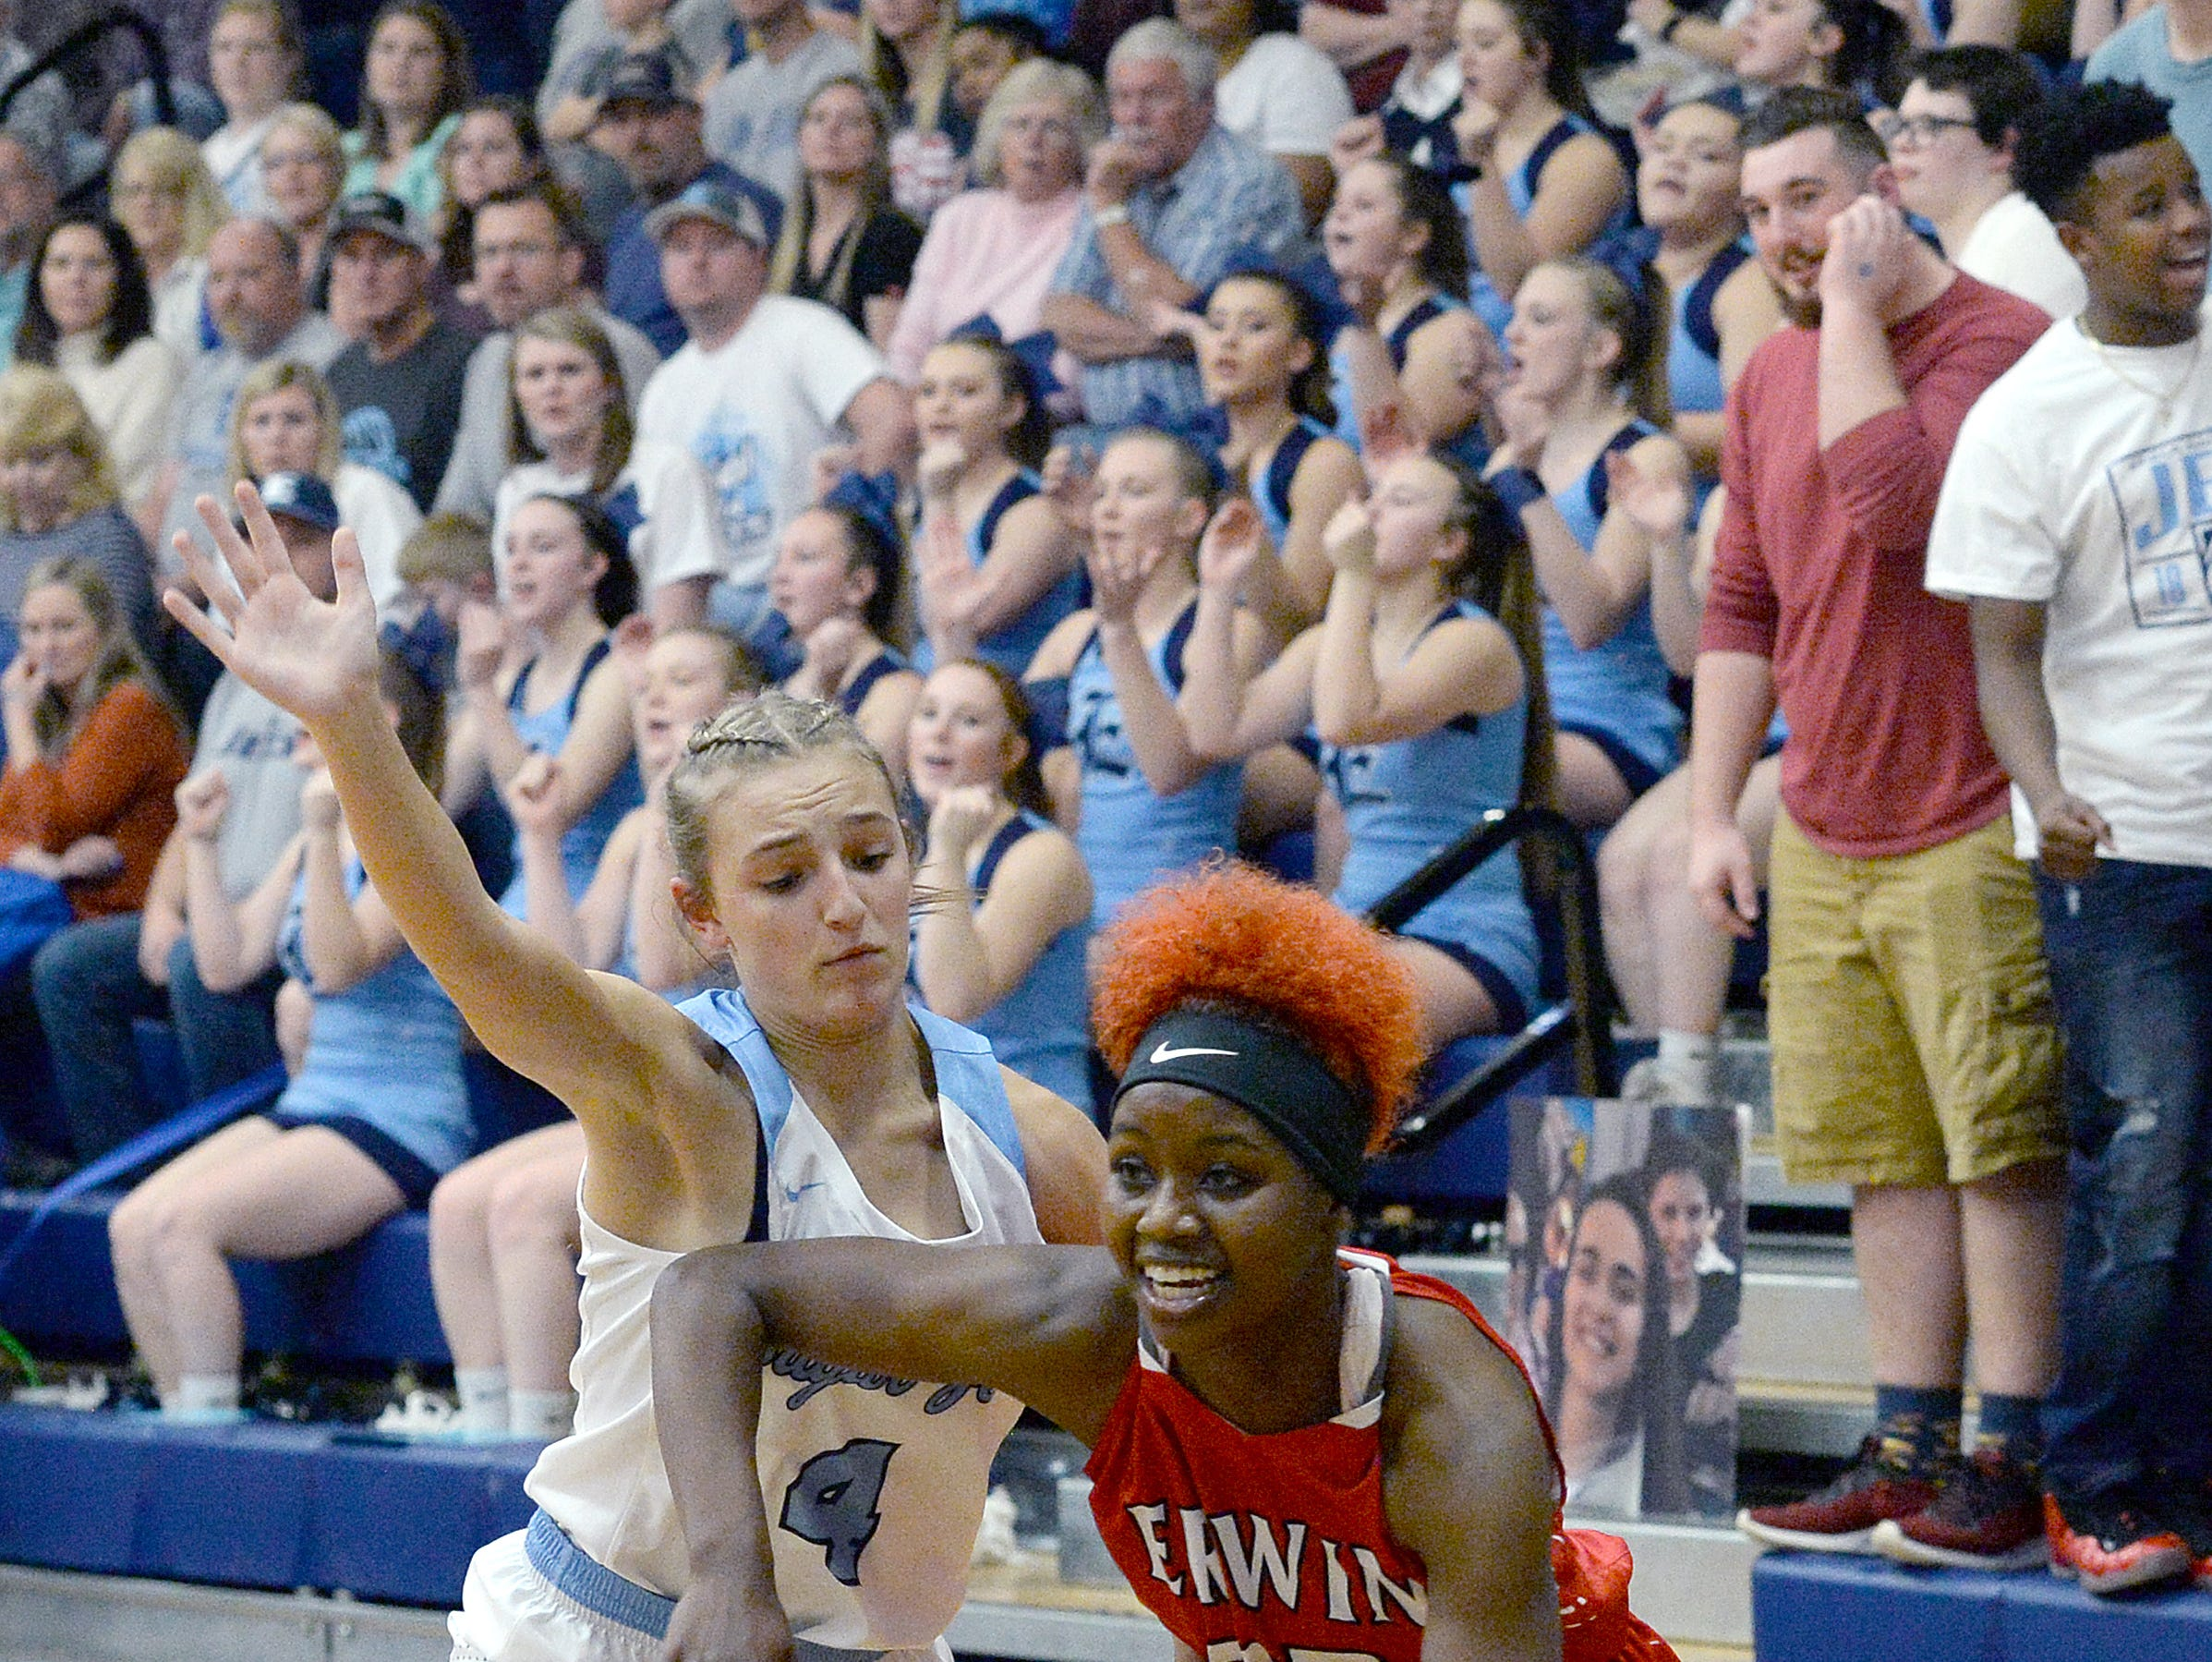 Erwin and Enka faced off at Enka High School on Jan. 8, 2019. The Lady Warriors defeated the Sugar Jets 61-45.